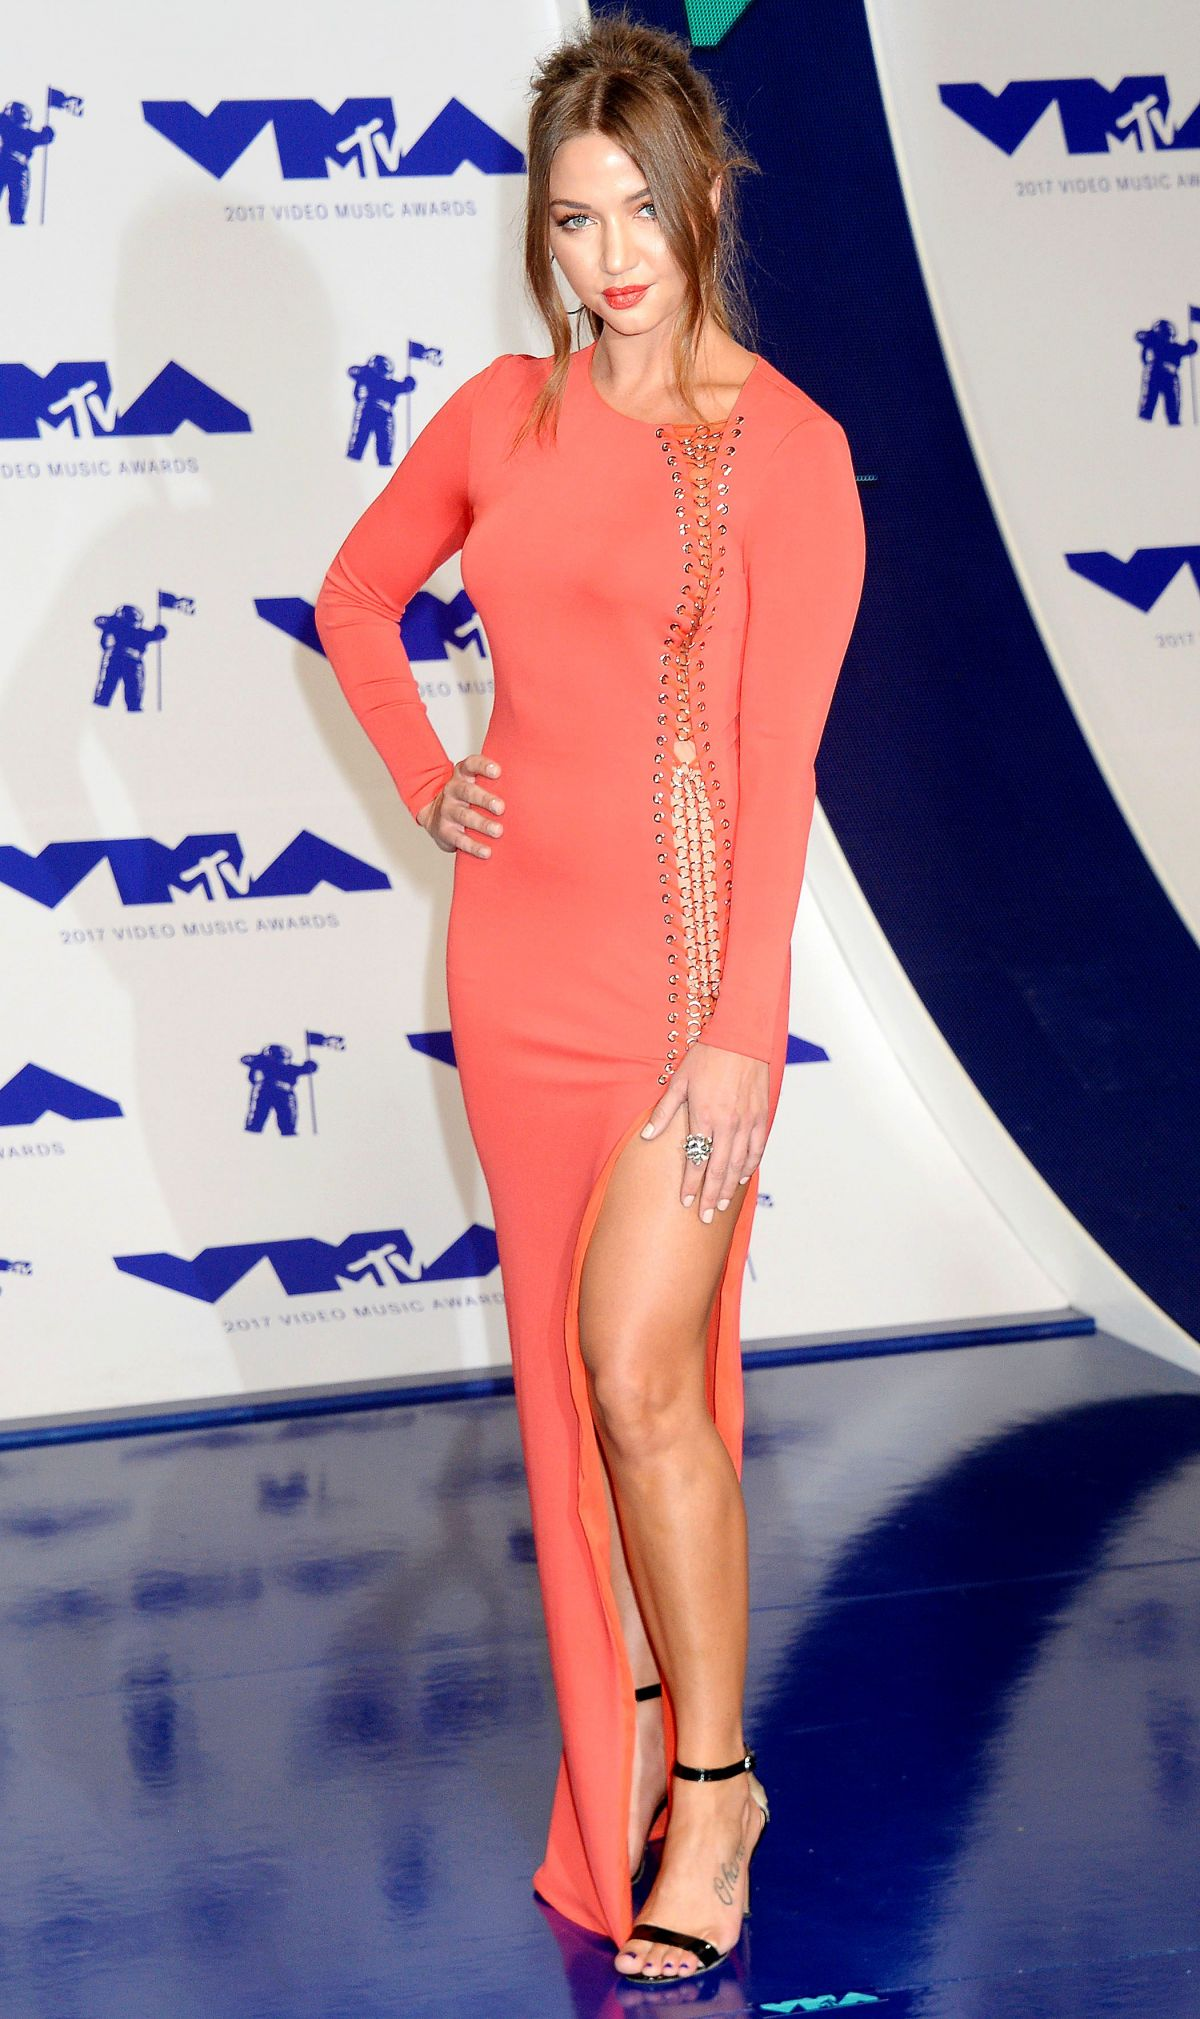 ERIKA COSTELL at 2017 MTV Video Music Awards in Los Angeles 08/27/2017